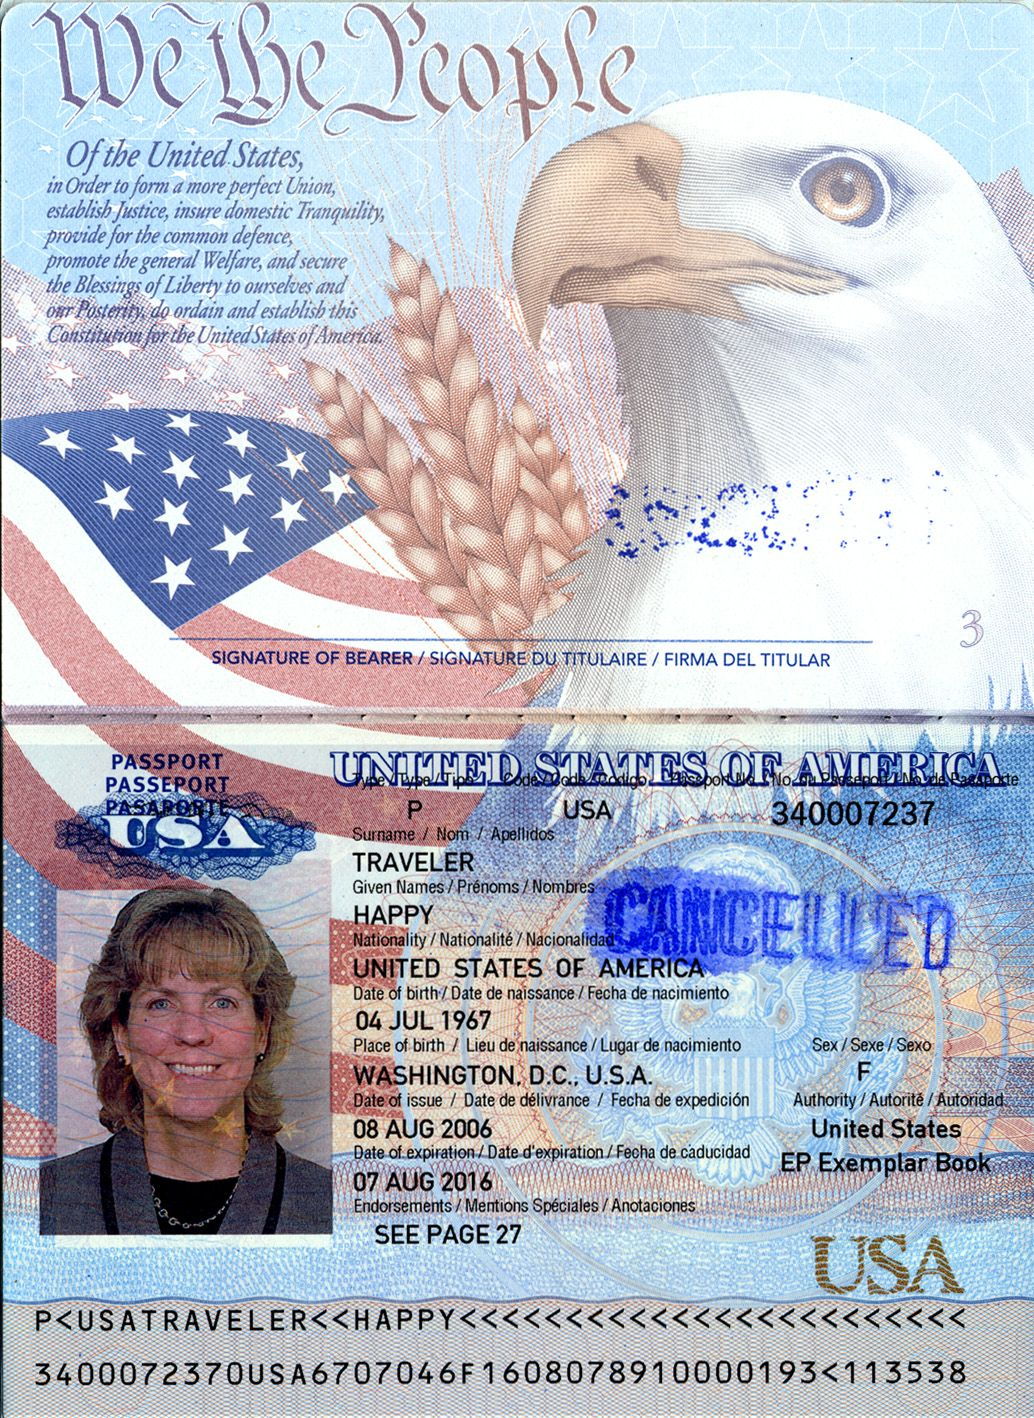 Make A Copy Of The Photo Page Of Your Passport And Keep Several